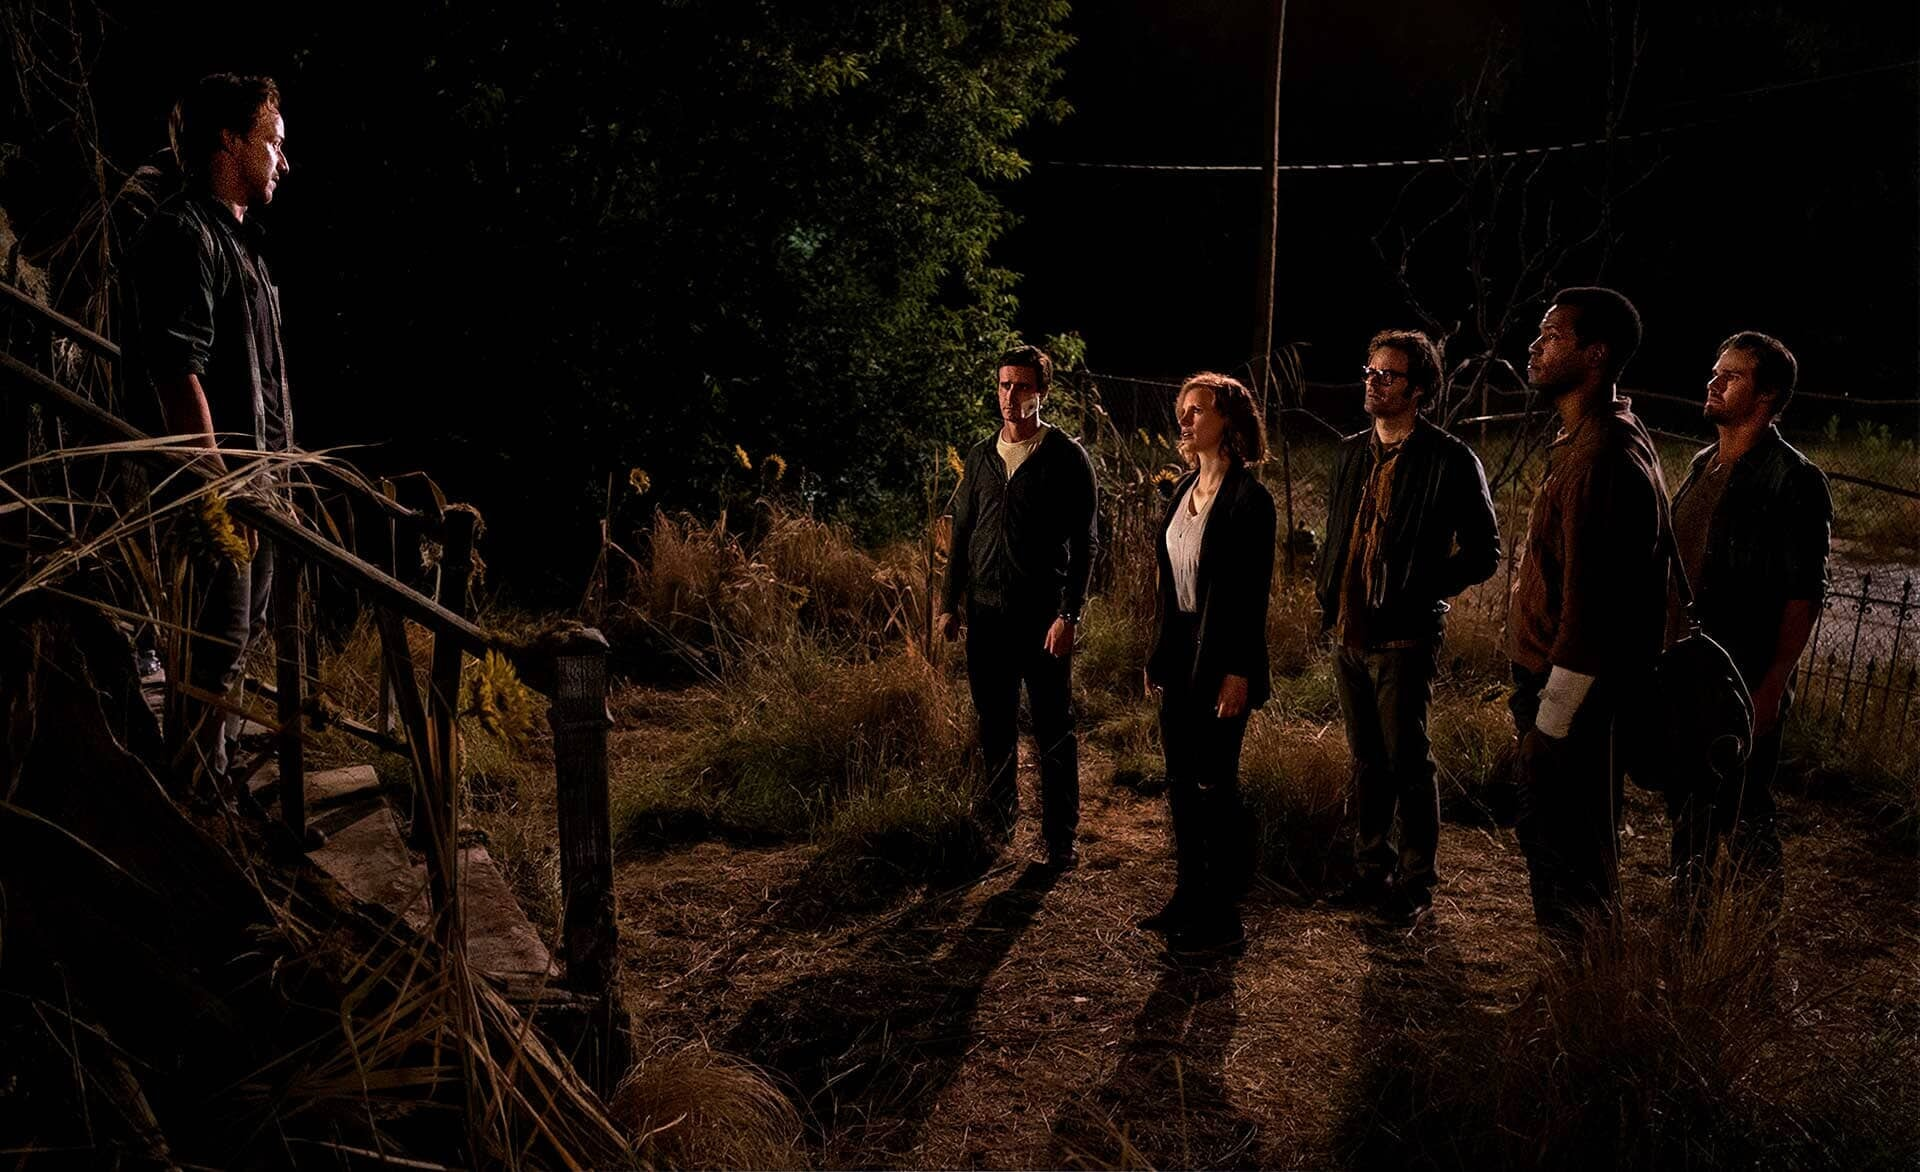 (L-r) JAMES McAVOY as Bill Denbrough, JAMES RANSONE as Eddie Kaspbrak, JESSICA CHASTAIN as Beverly Marsh, BILL HADER as Richie Tozier, ISAIAH MUSTAFA as Mike Hanlon, and JAY RYAN as Ben Hascomb